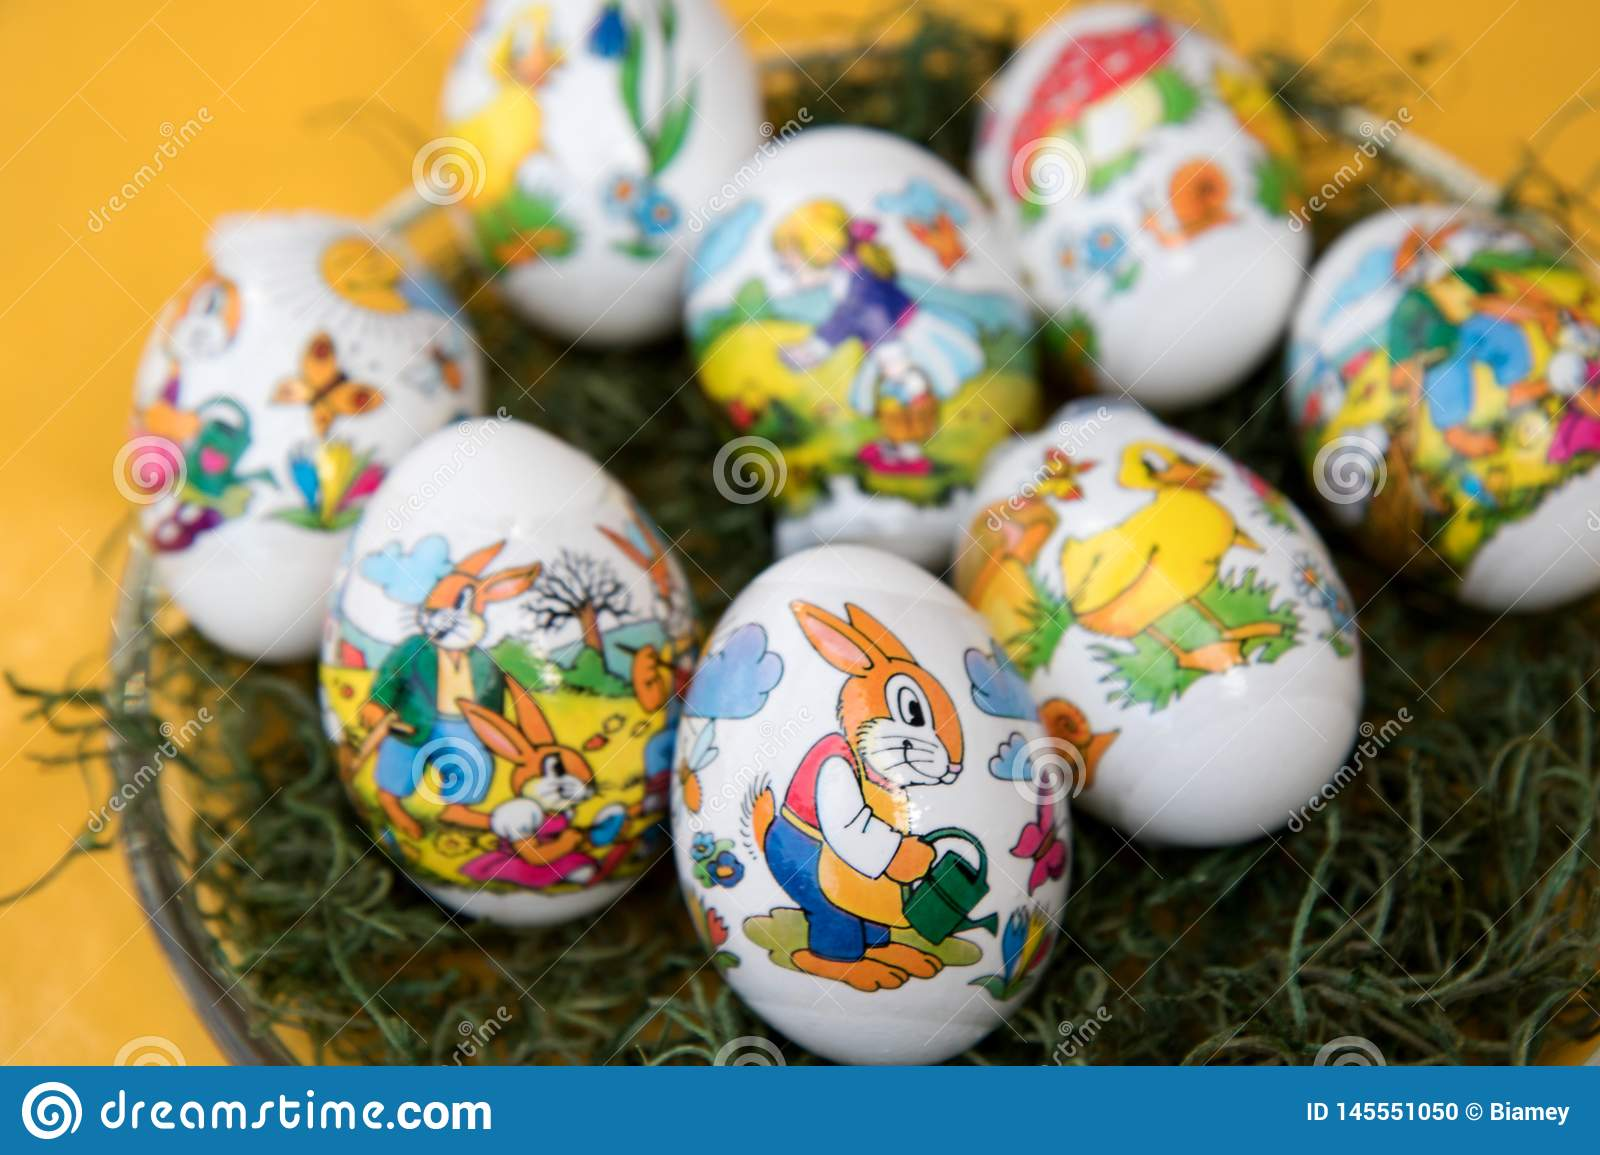 Closer view on an easter egg with an easter bunny on a yellow tablecloth